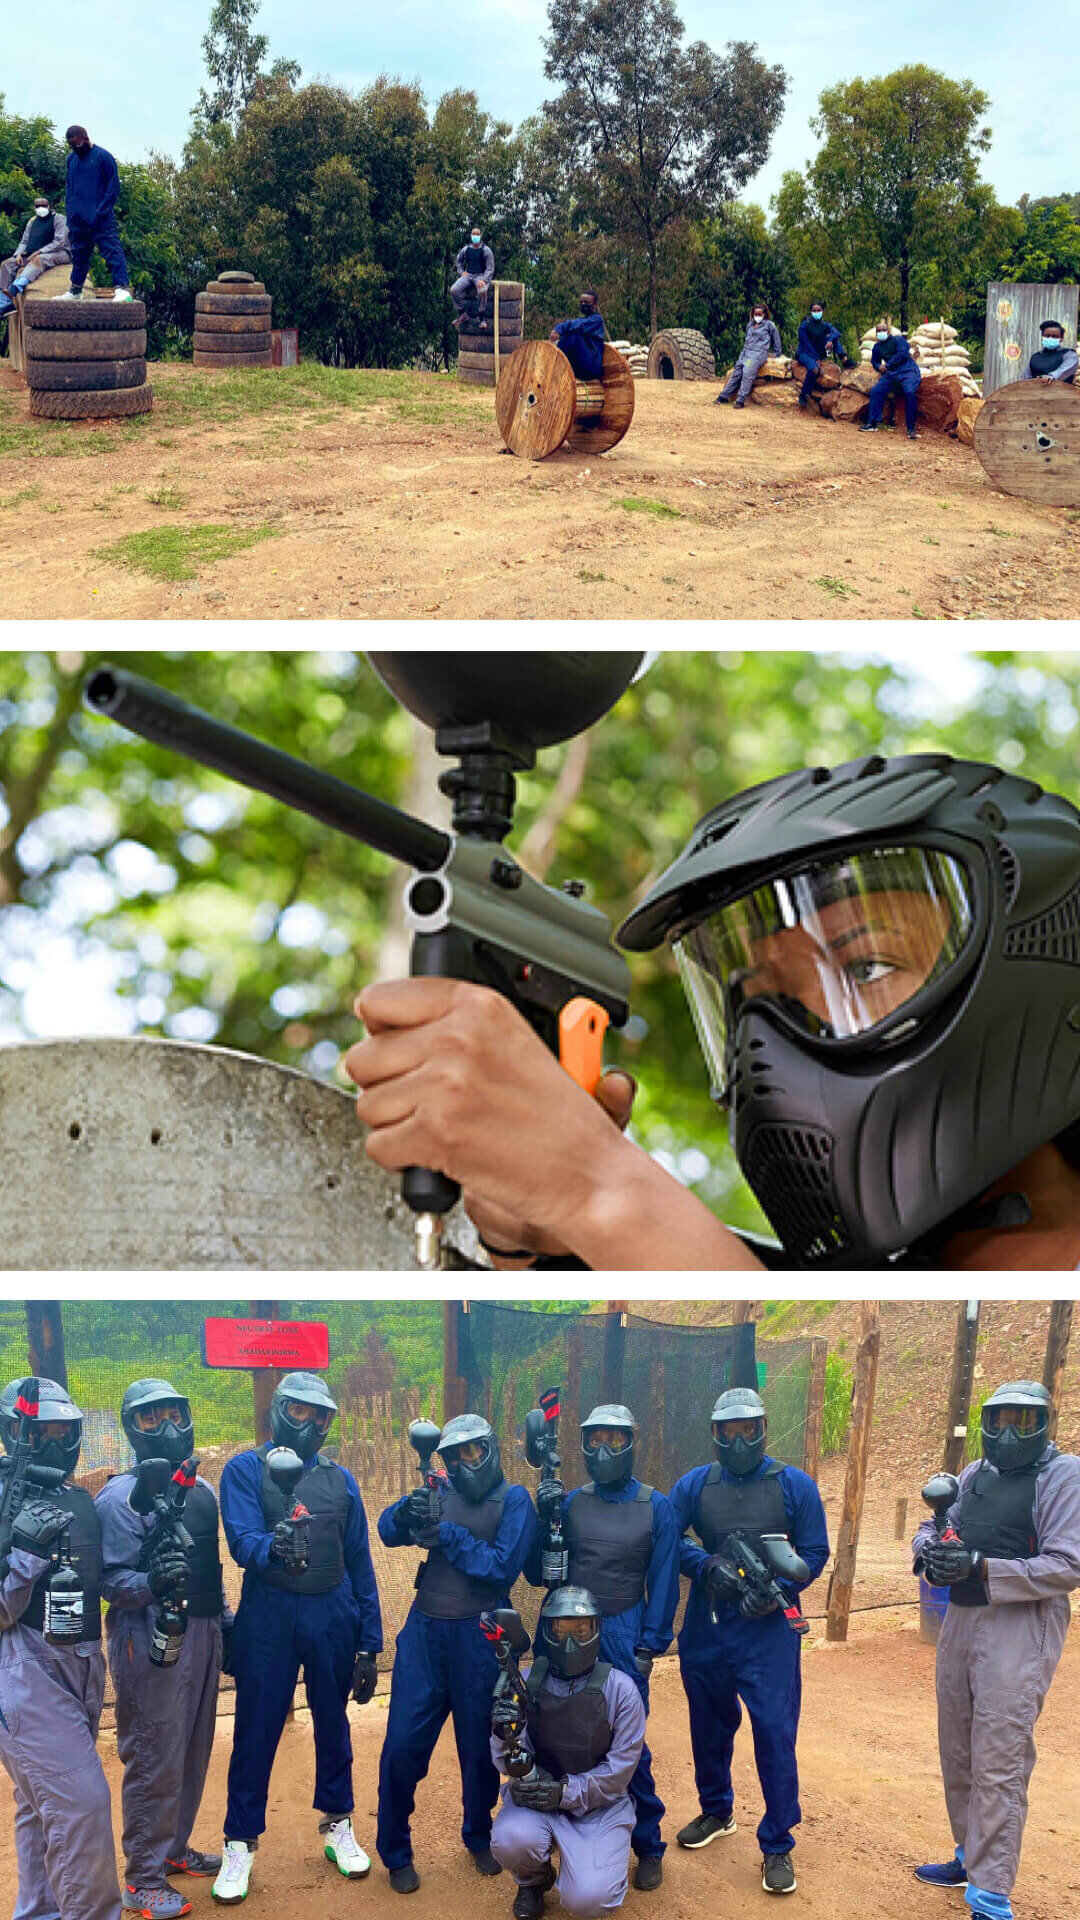 9.paintball away the adrenaline at mt.kigali